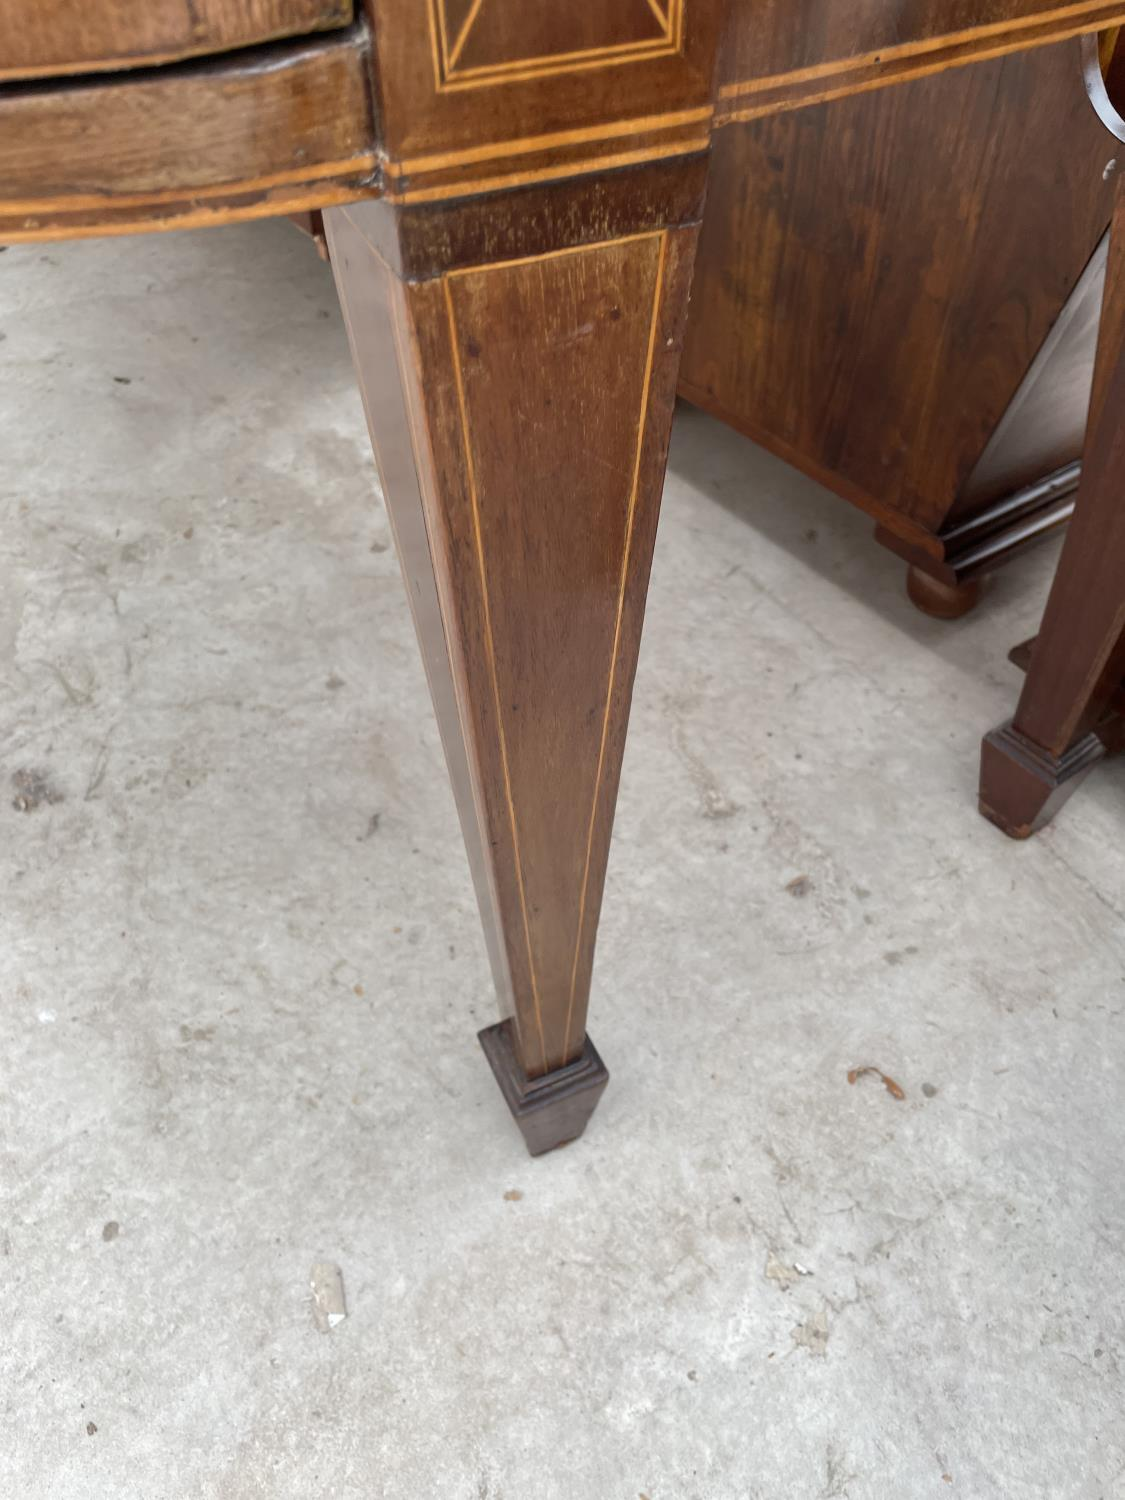 """A 19TH CENTURY MAHOGANY BOWFRONTED SIDEBOARD ON TAPERED LEGS, WITH SPADE FEET, 78"""" - Image 10 of 10"""